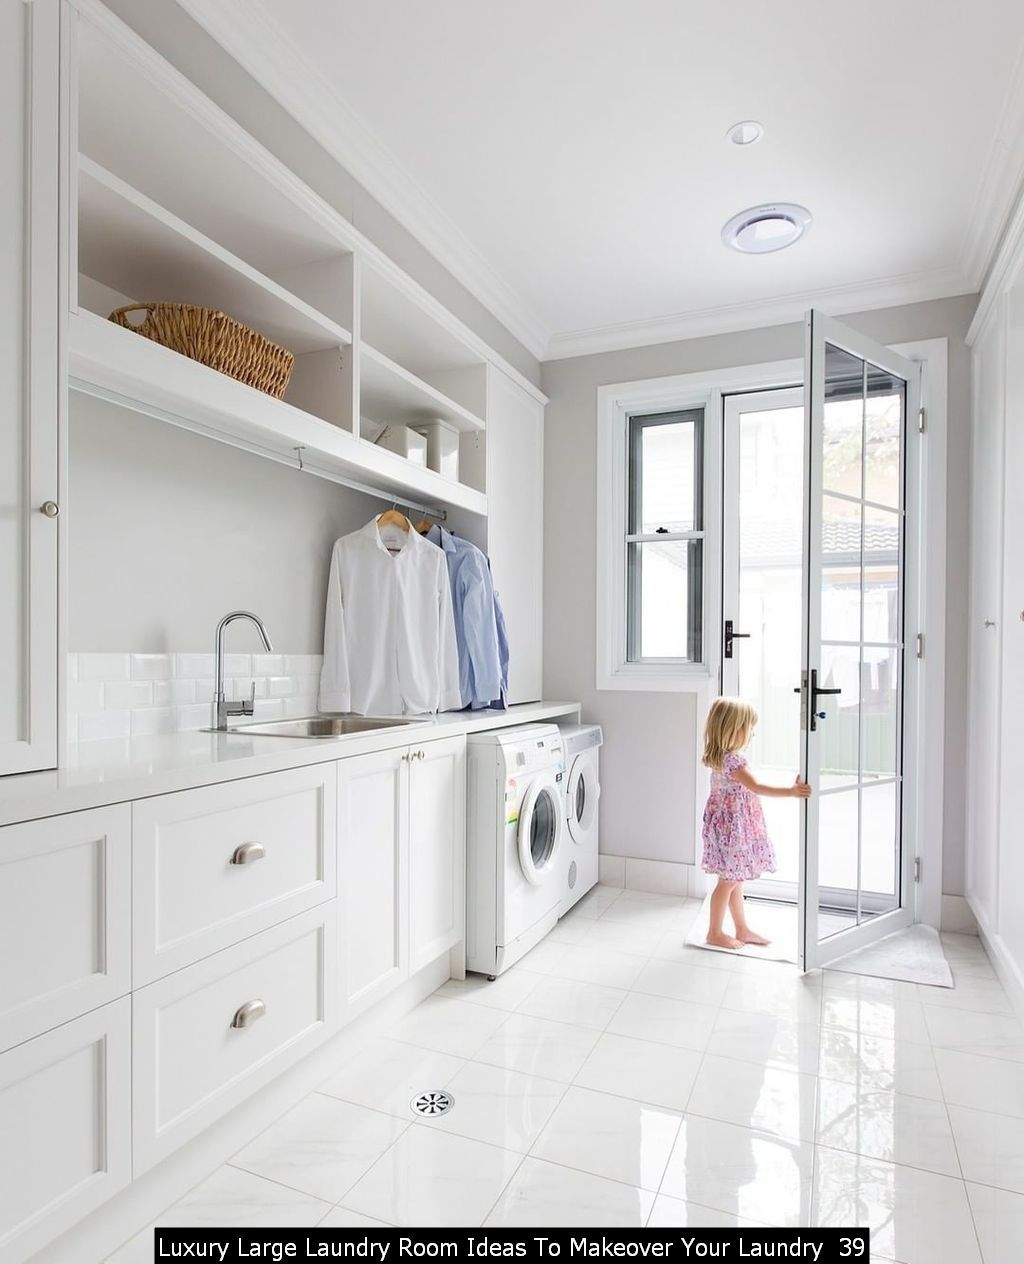 20 Luxury Large Laundry Room Ideas To Makeover Your Laundry ...